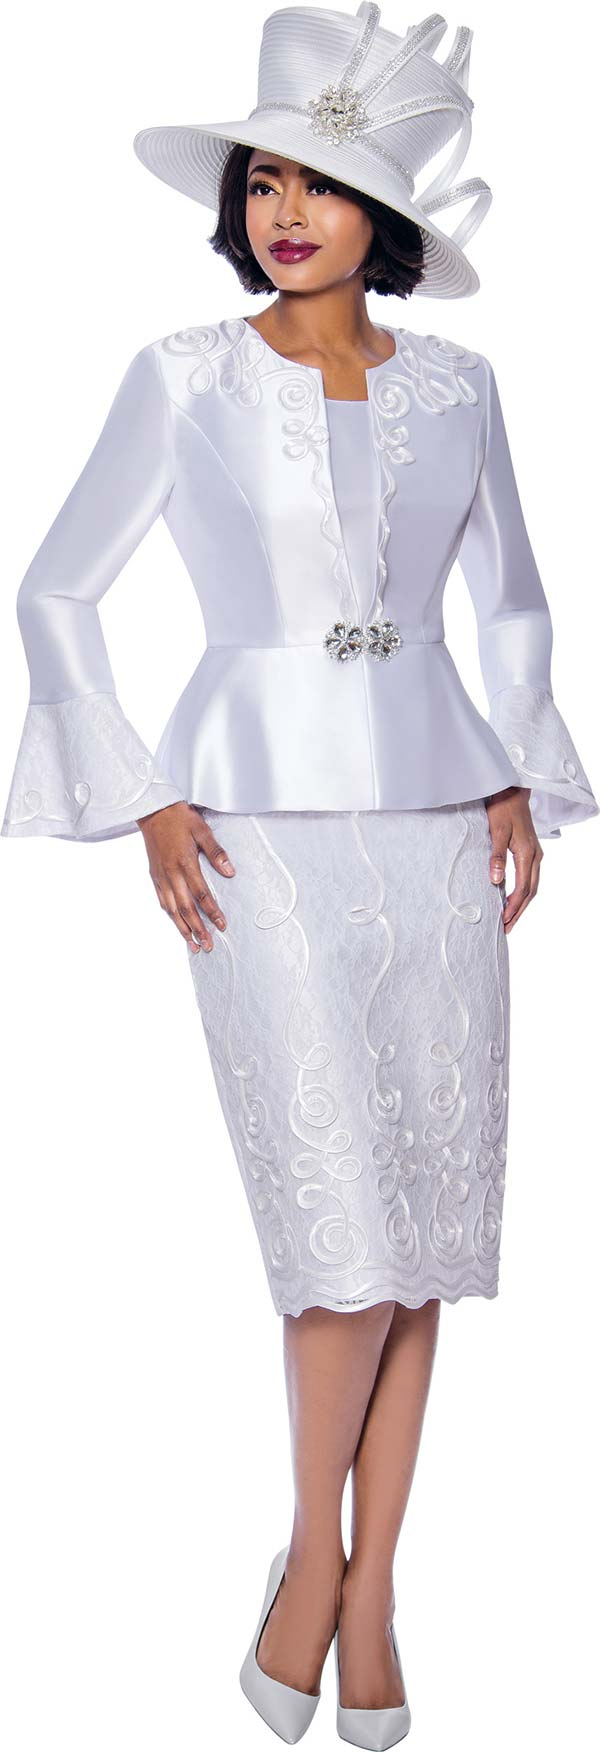 Susanna 3957-White - Ladies Church Suit With Peplum Bell Cuff Jacket Featuring Swirl Piping Design